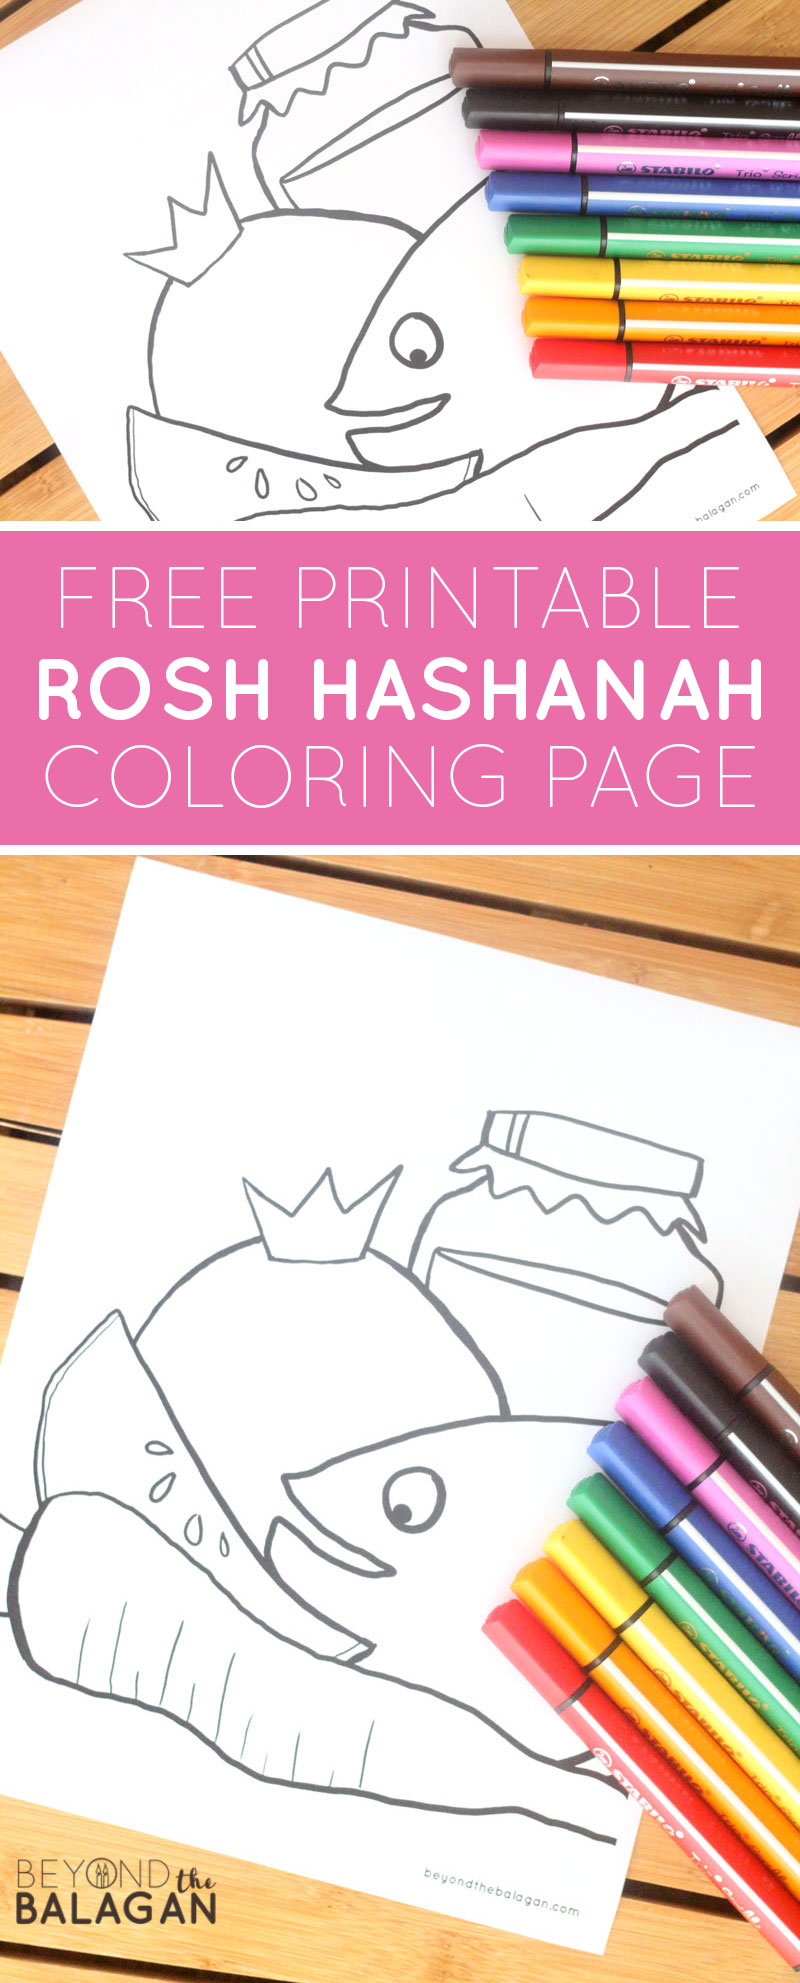 Download And Print This Free Printable Rosh Hashanah Coloring Page